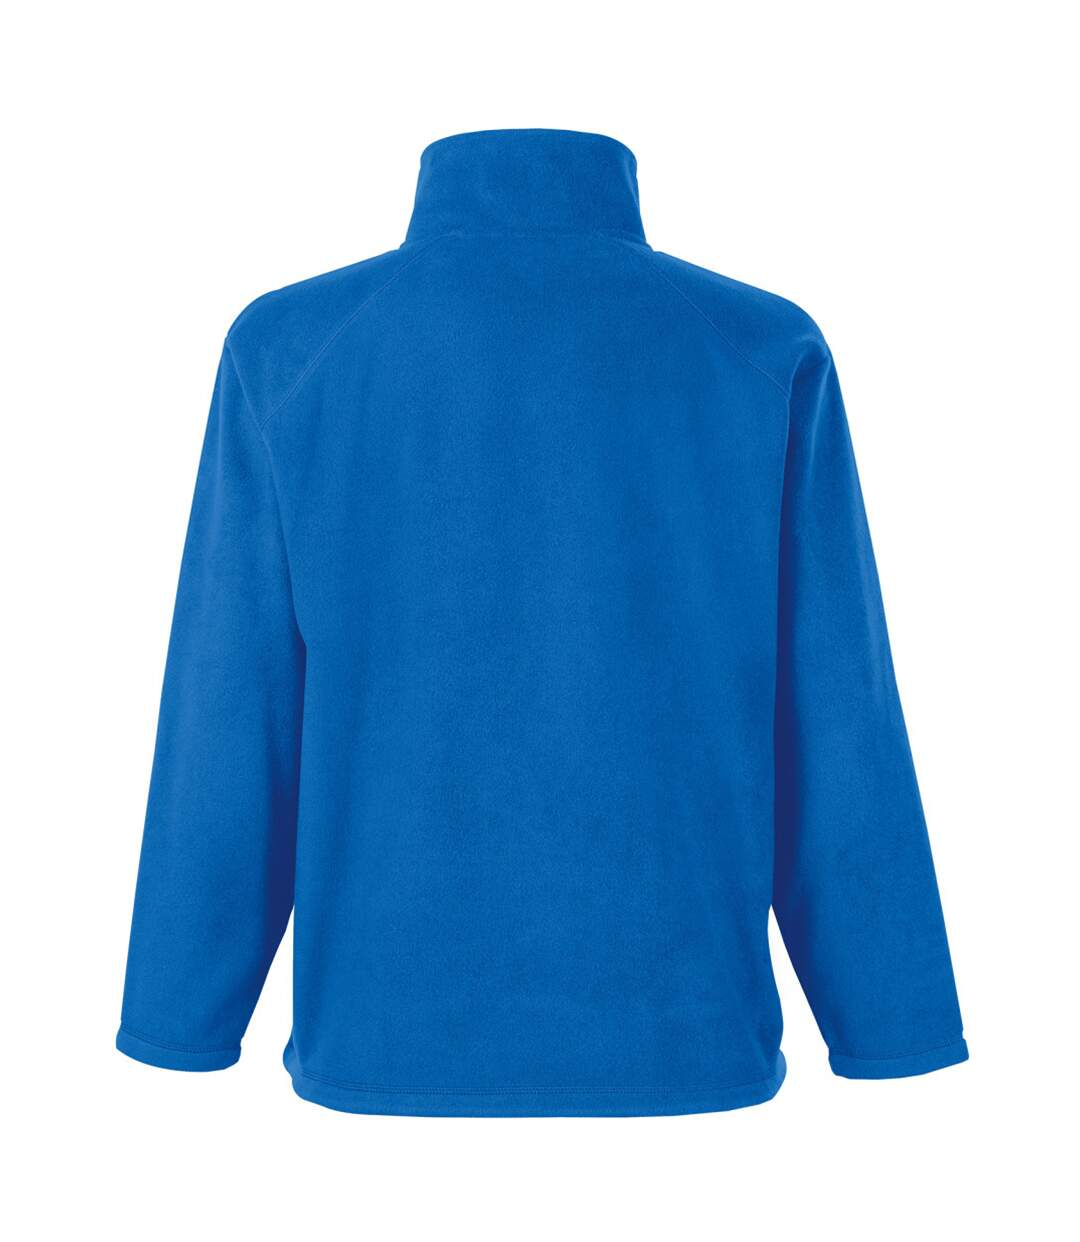 Fruit Of The Loom Mens Half Zip Outdoor Fleece Top (Royal) - UTBC374